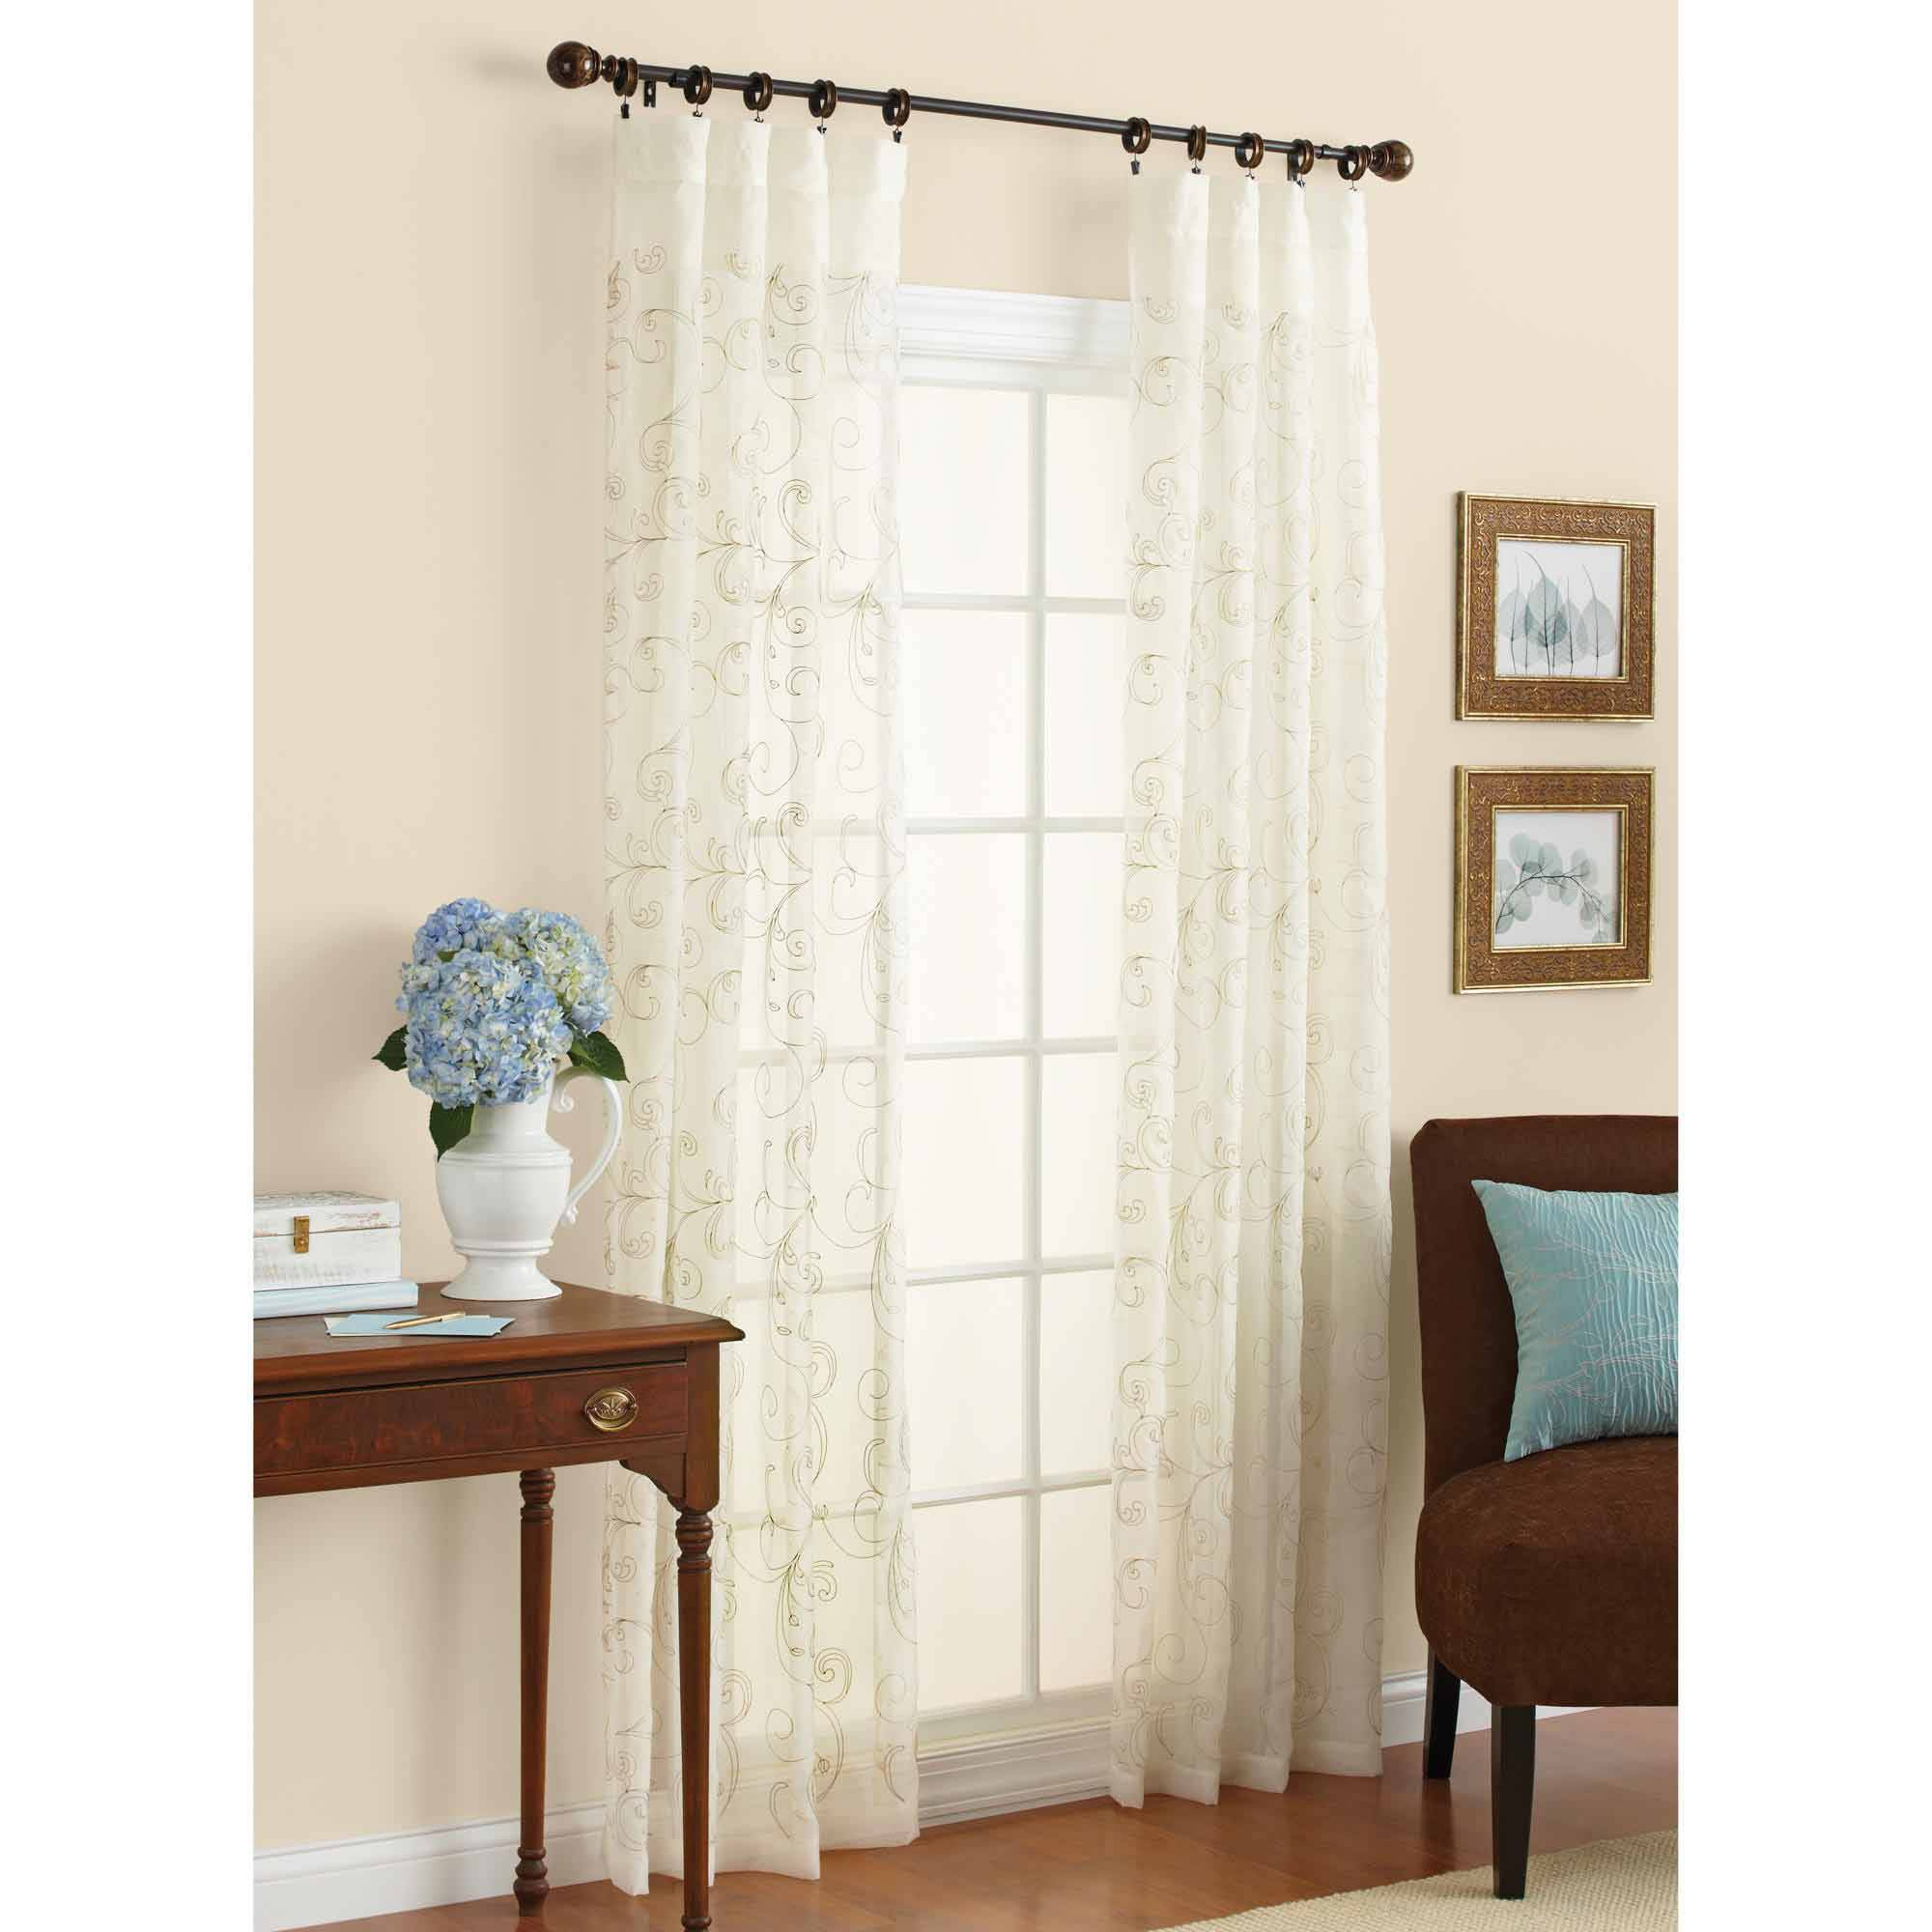 Better Homes & Gardens Embroidered Sheer Curtain Panel - Walmart.com